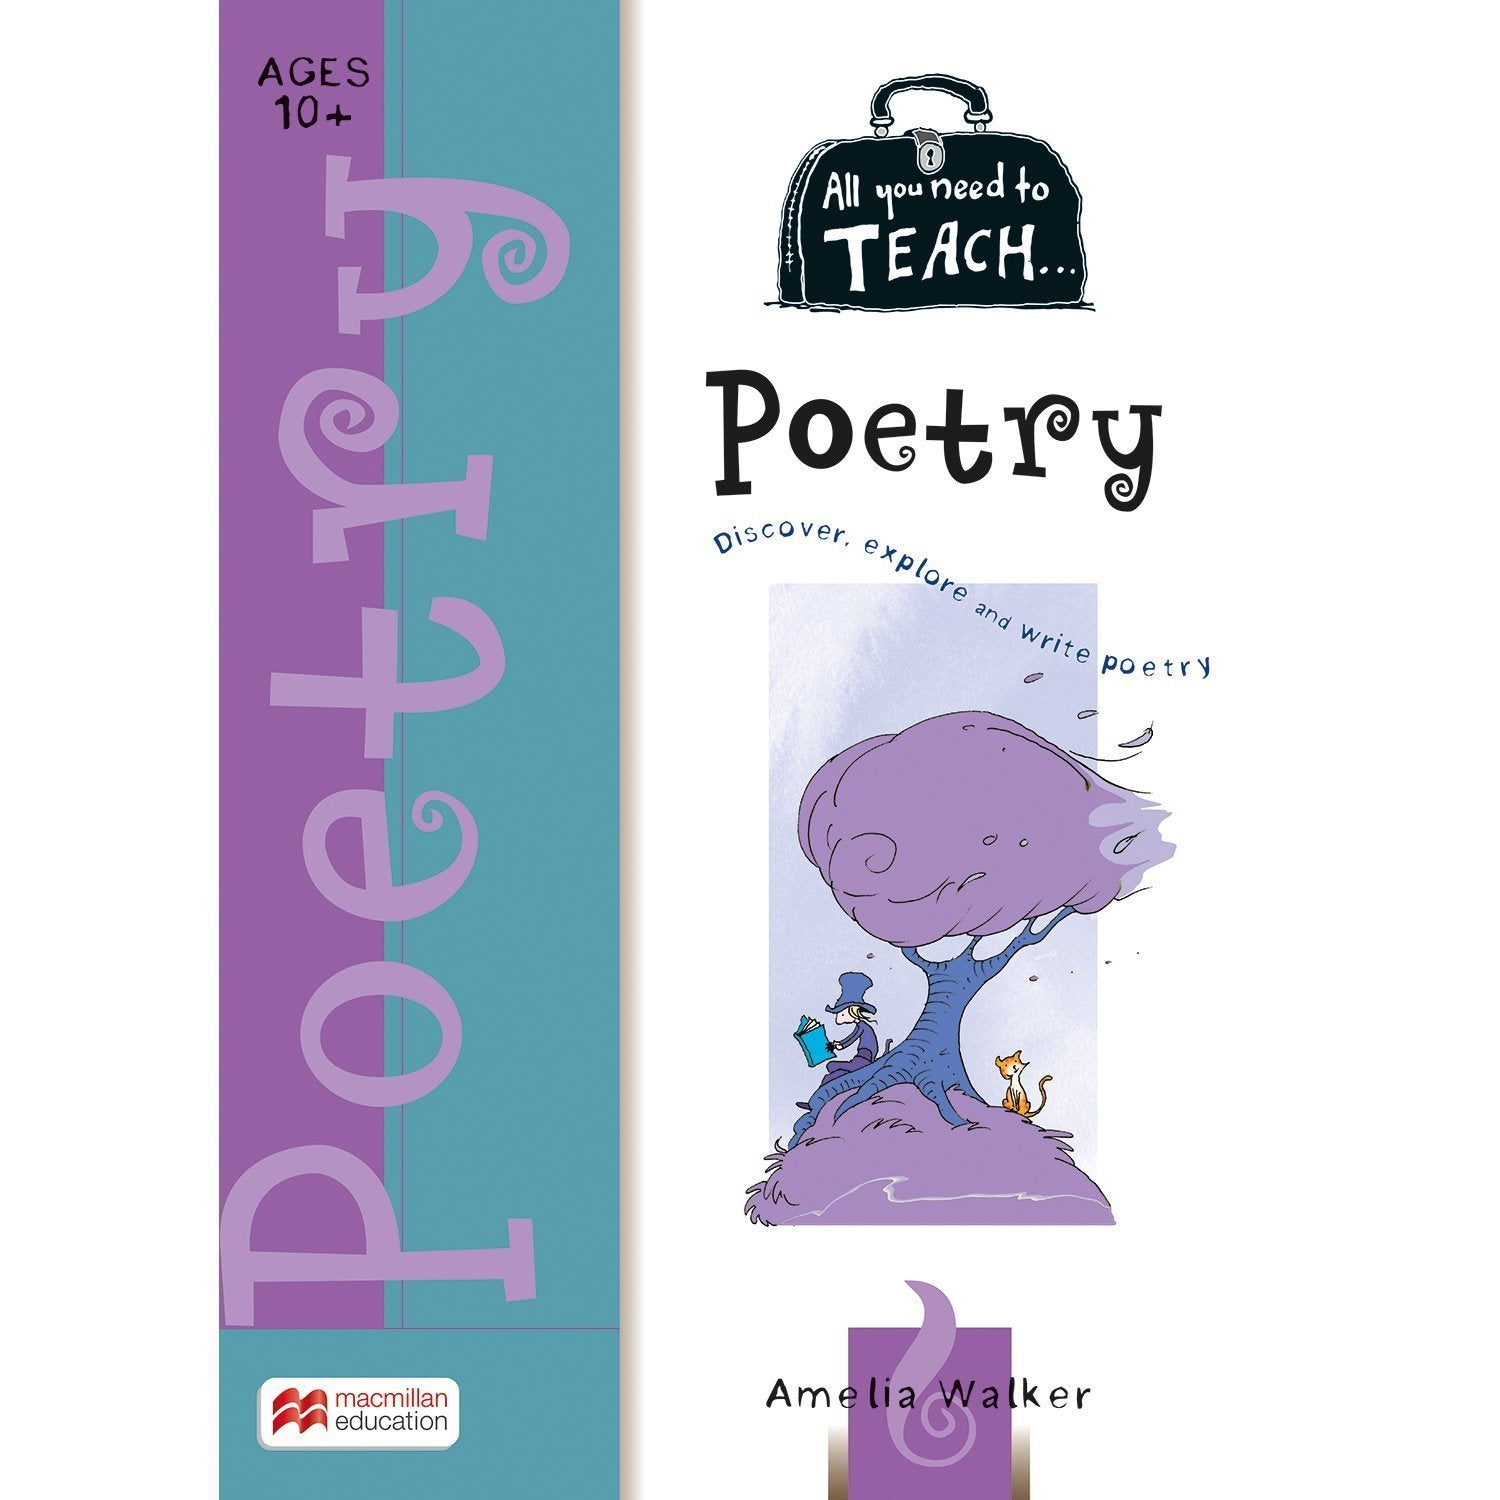 All You Need to Teach: Poetry Ages 10+